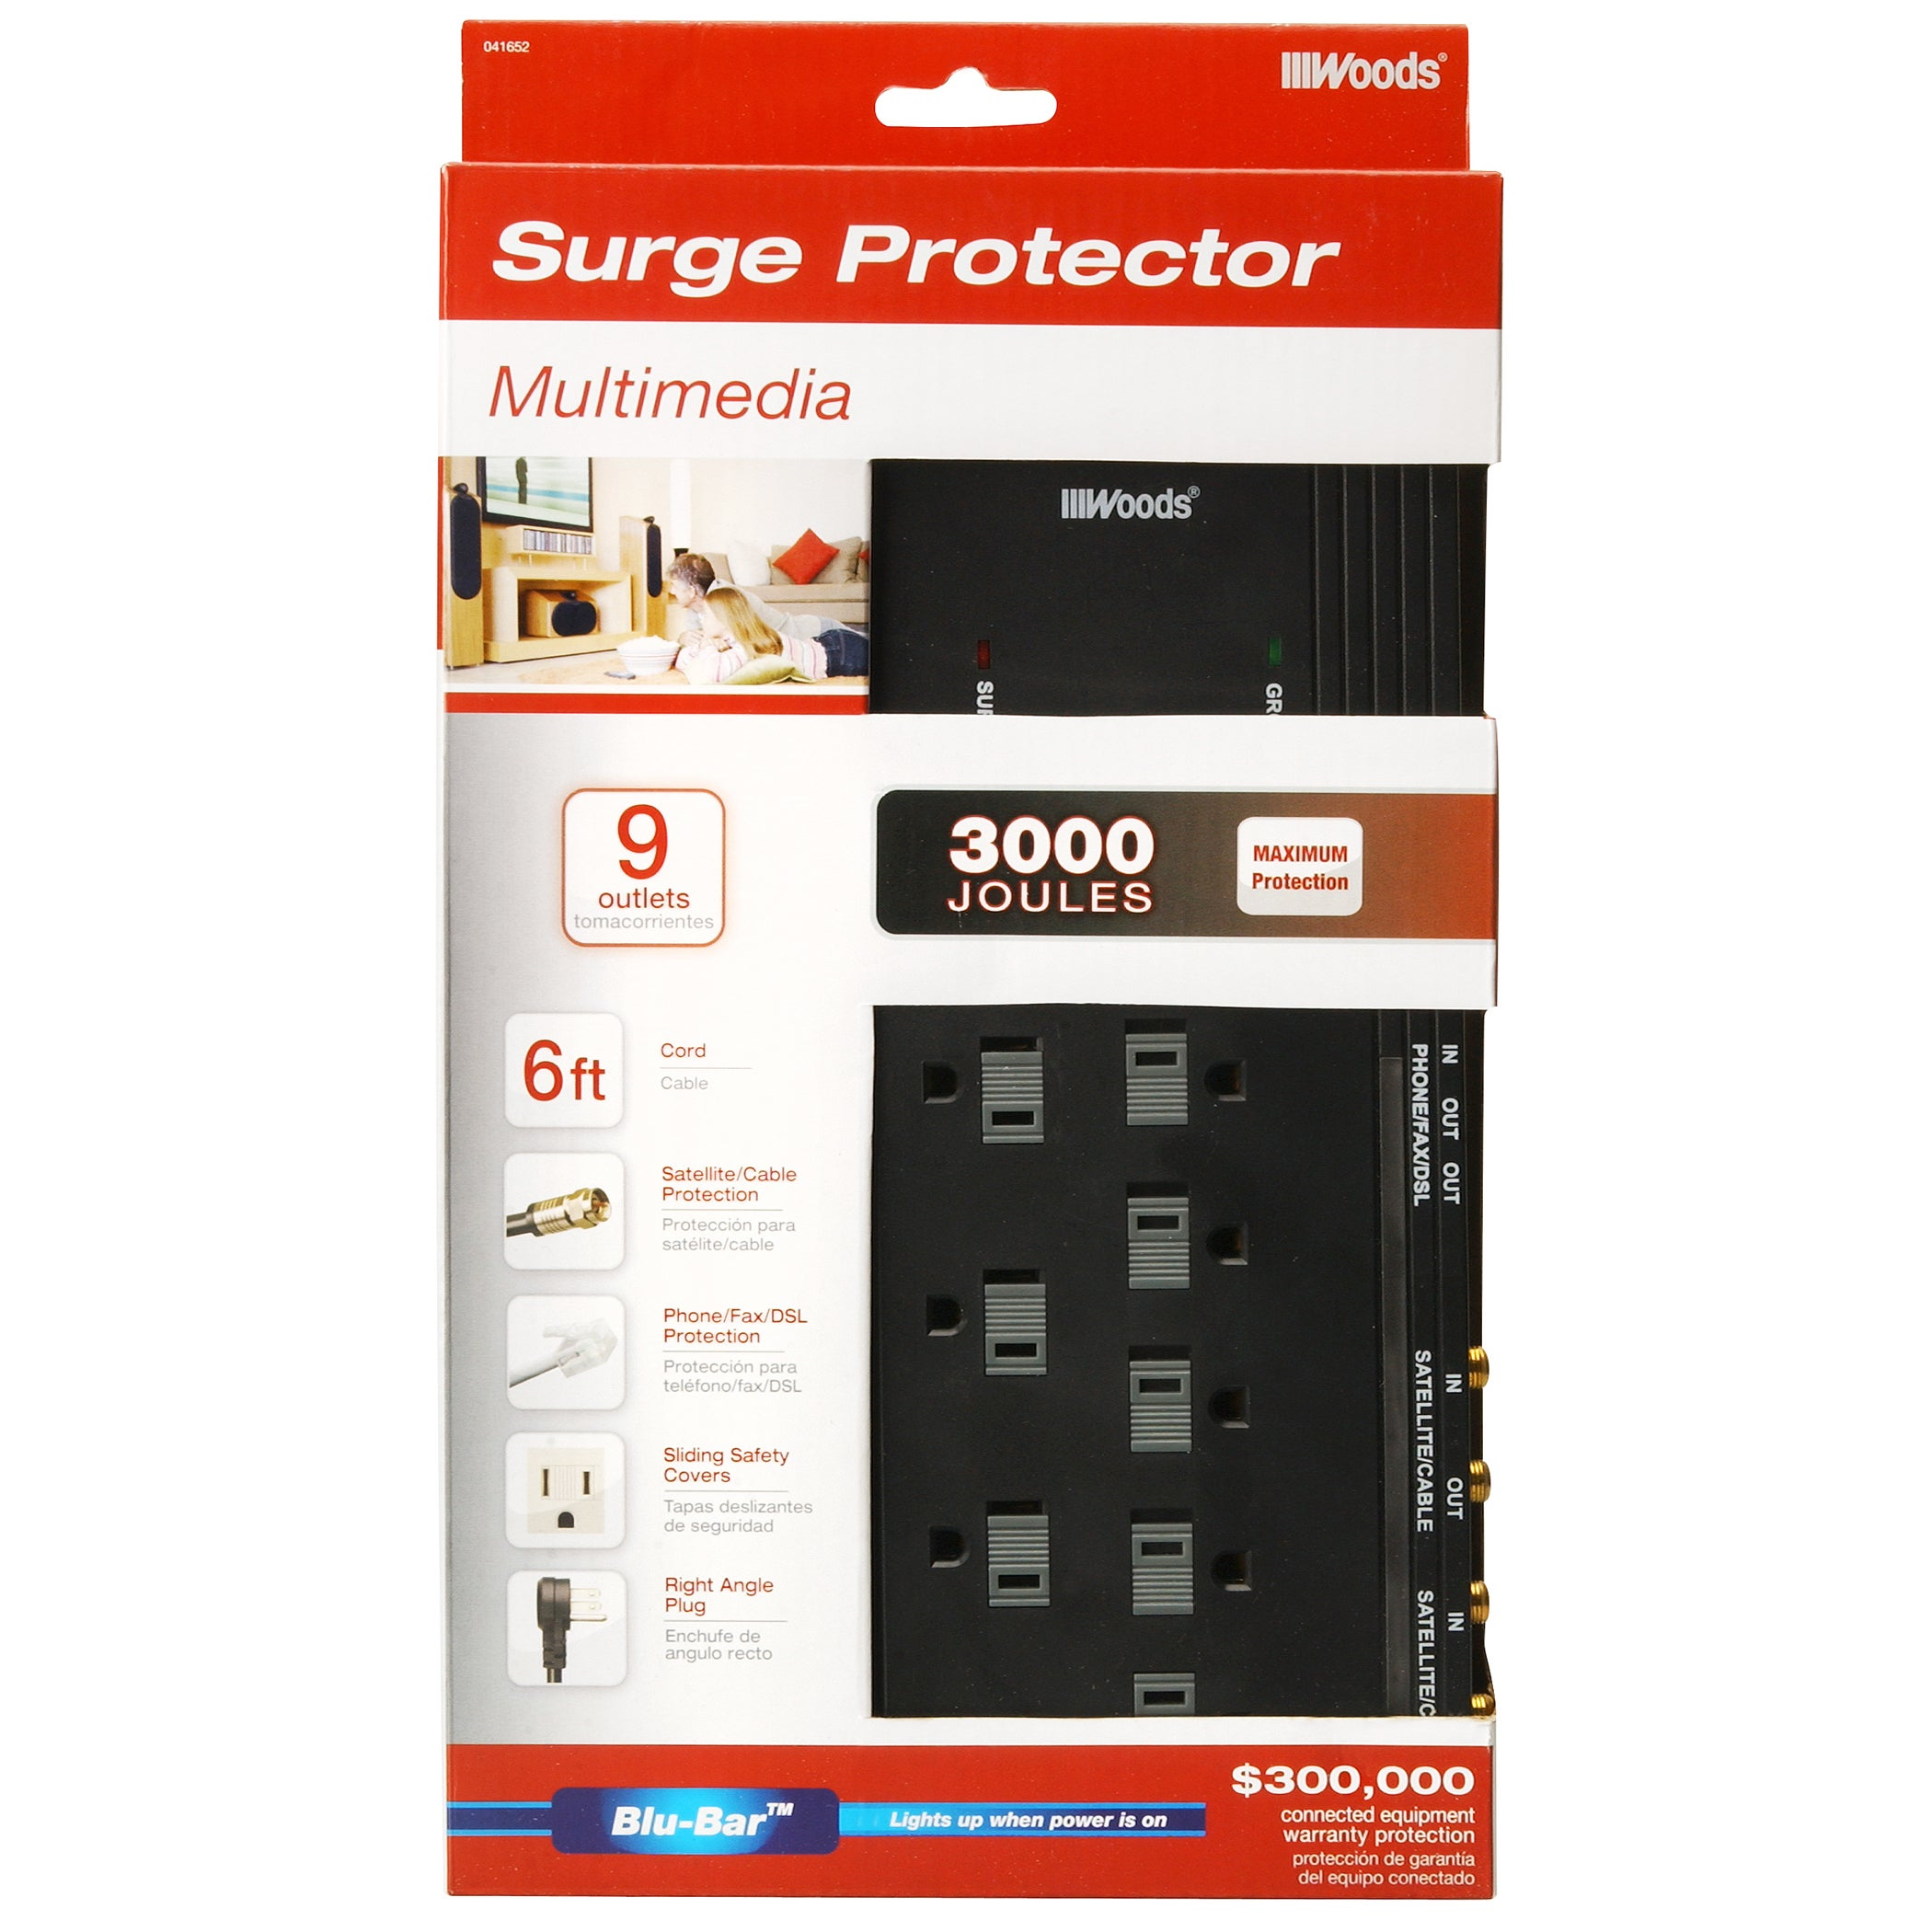 Woods 41652 88 11 9 Outlet 3000 Joules Black Surge Protector With 6 Cord Free Shipping On Orders Over 45 11781836